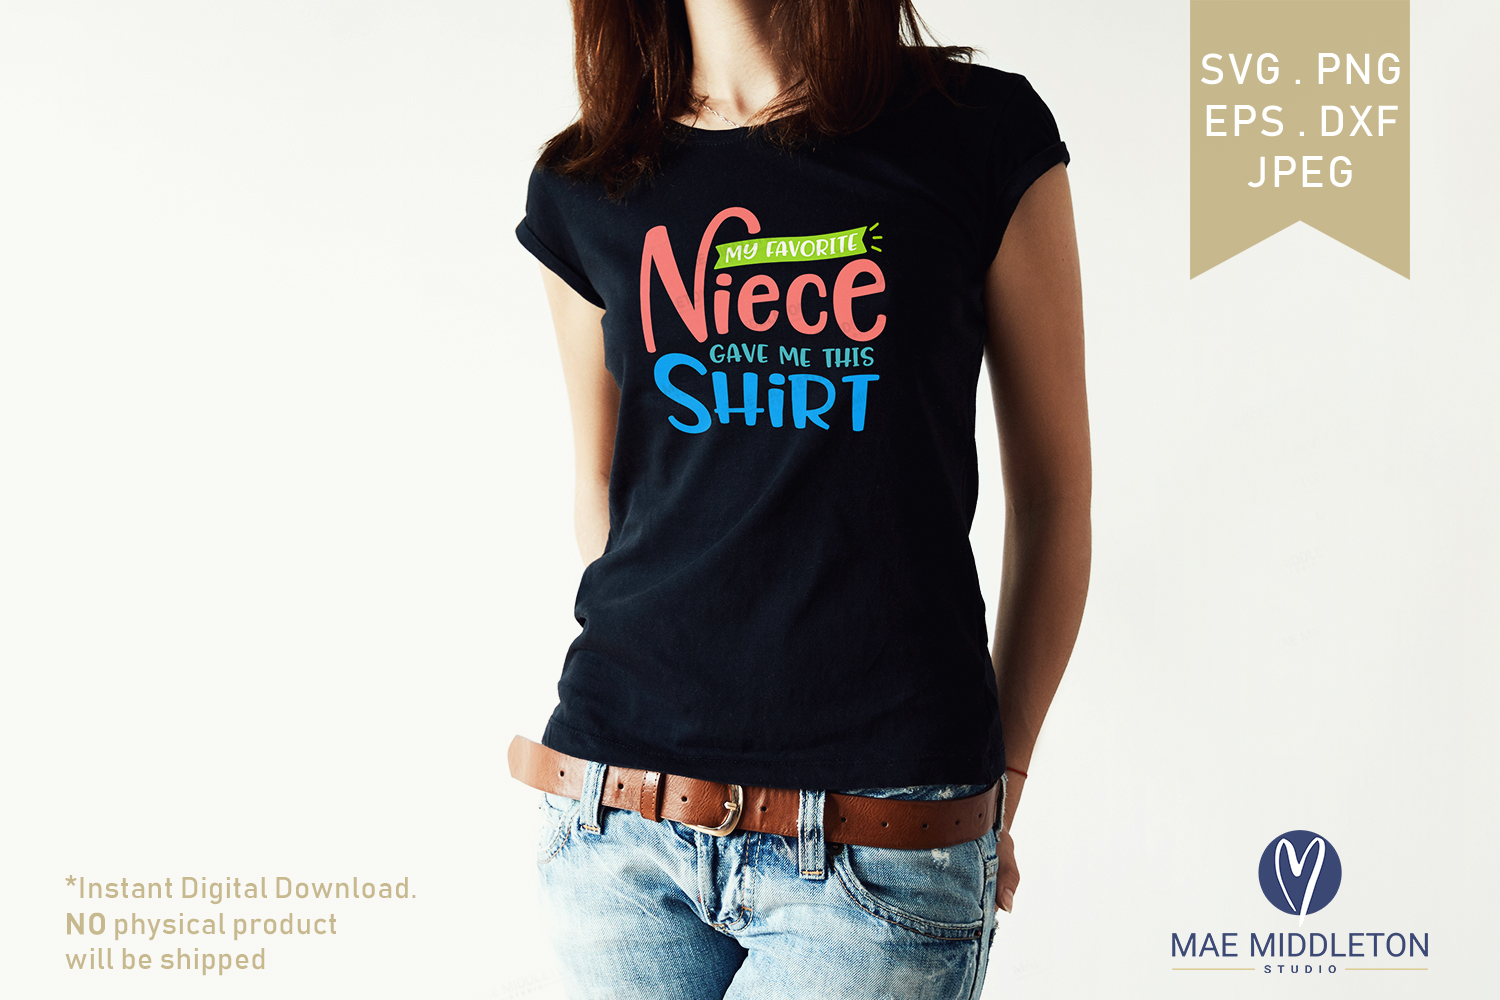 My Favorite... Gave Me This Shirt SVG Bundle example image 10